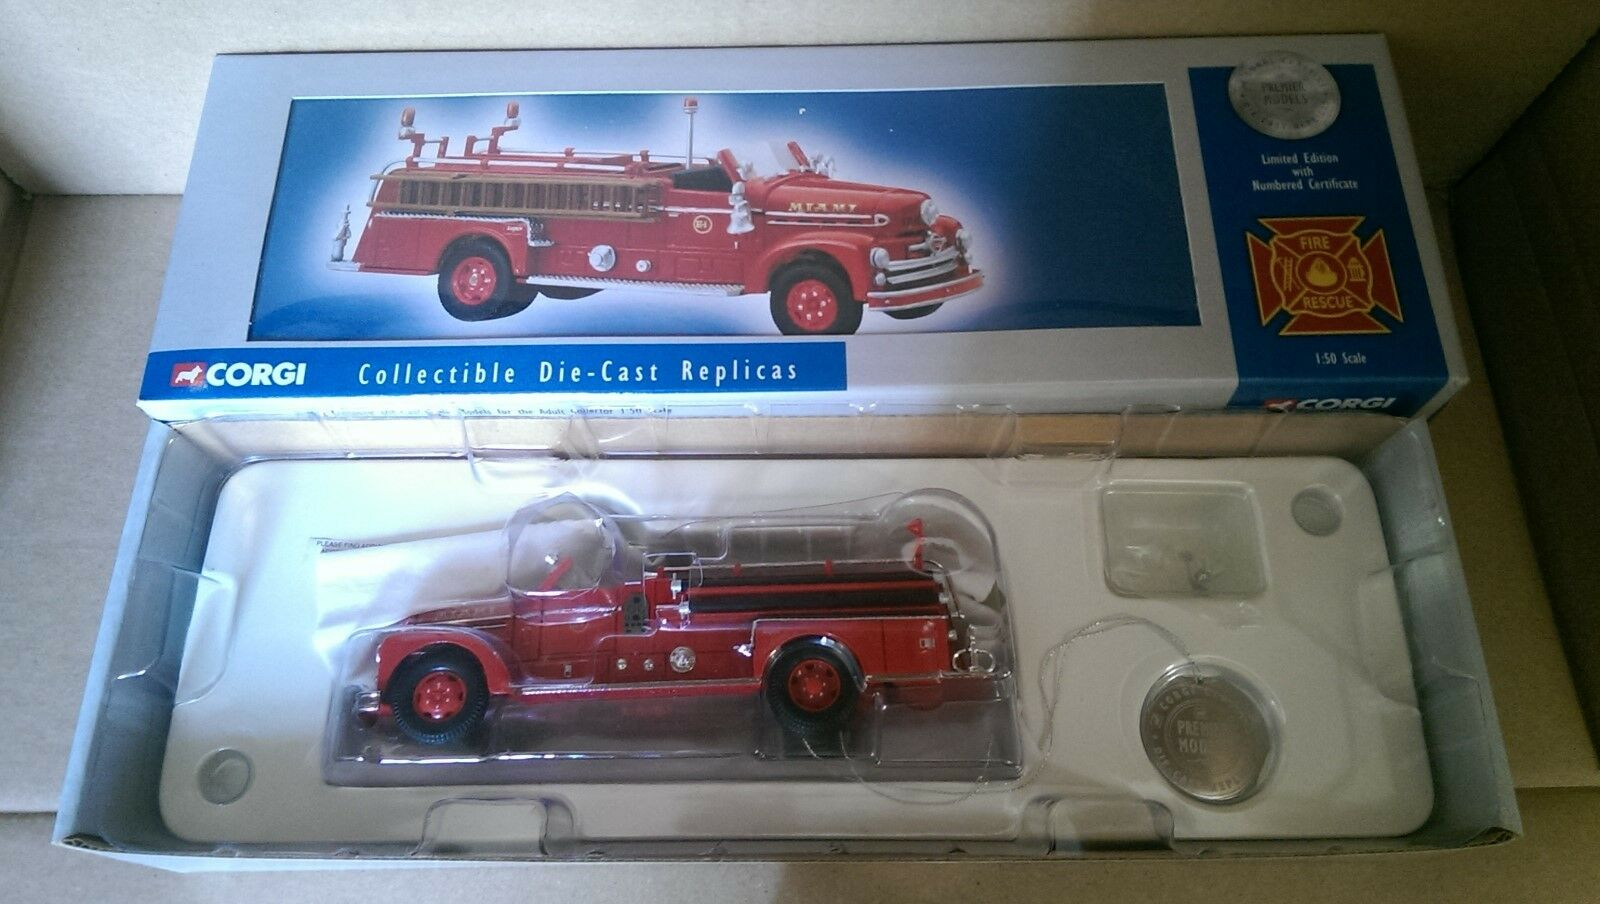 contador genuino Corgi Corgi Corgi US50503 Seagrave 70th Anniversary Miami, FL. Ltd Edition No. 0004 of 3700  envío gratis